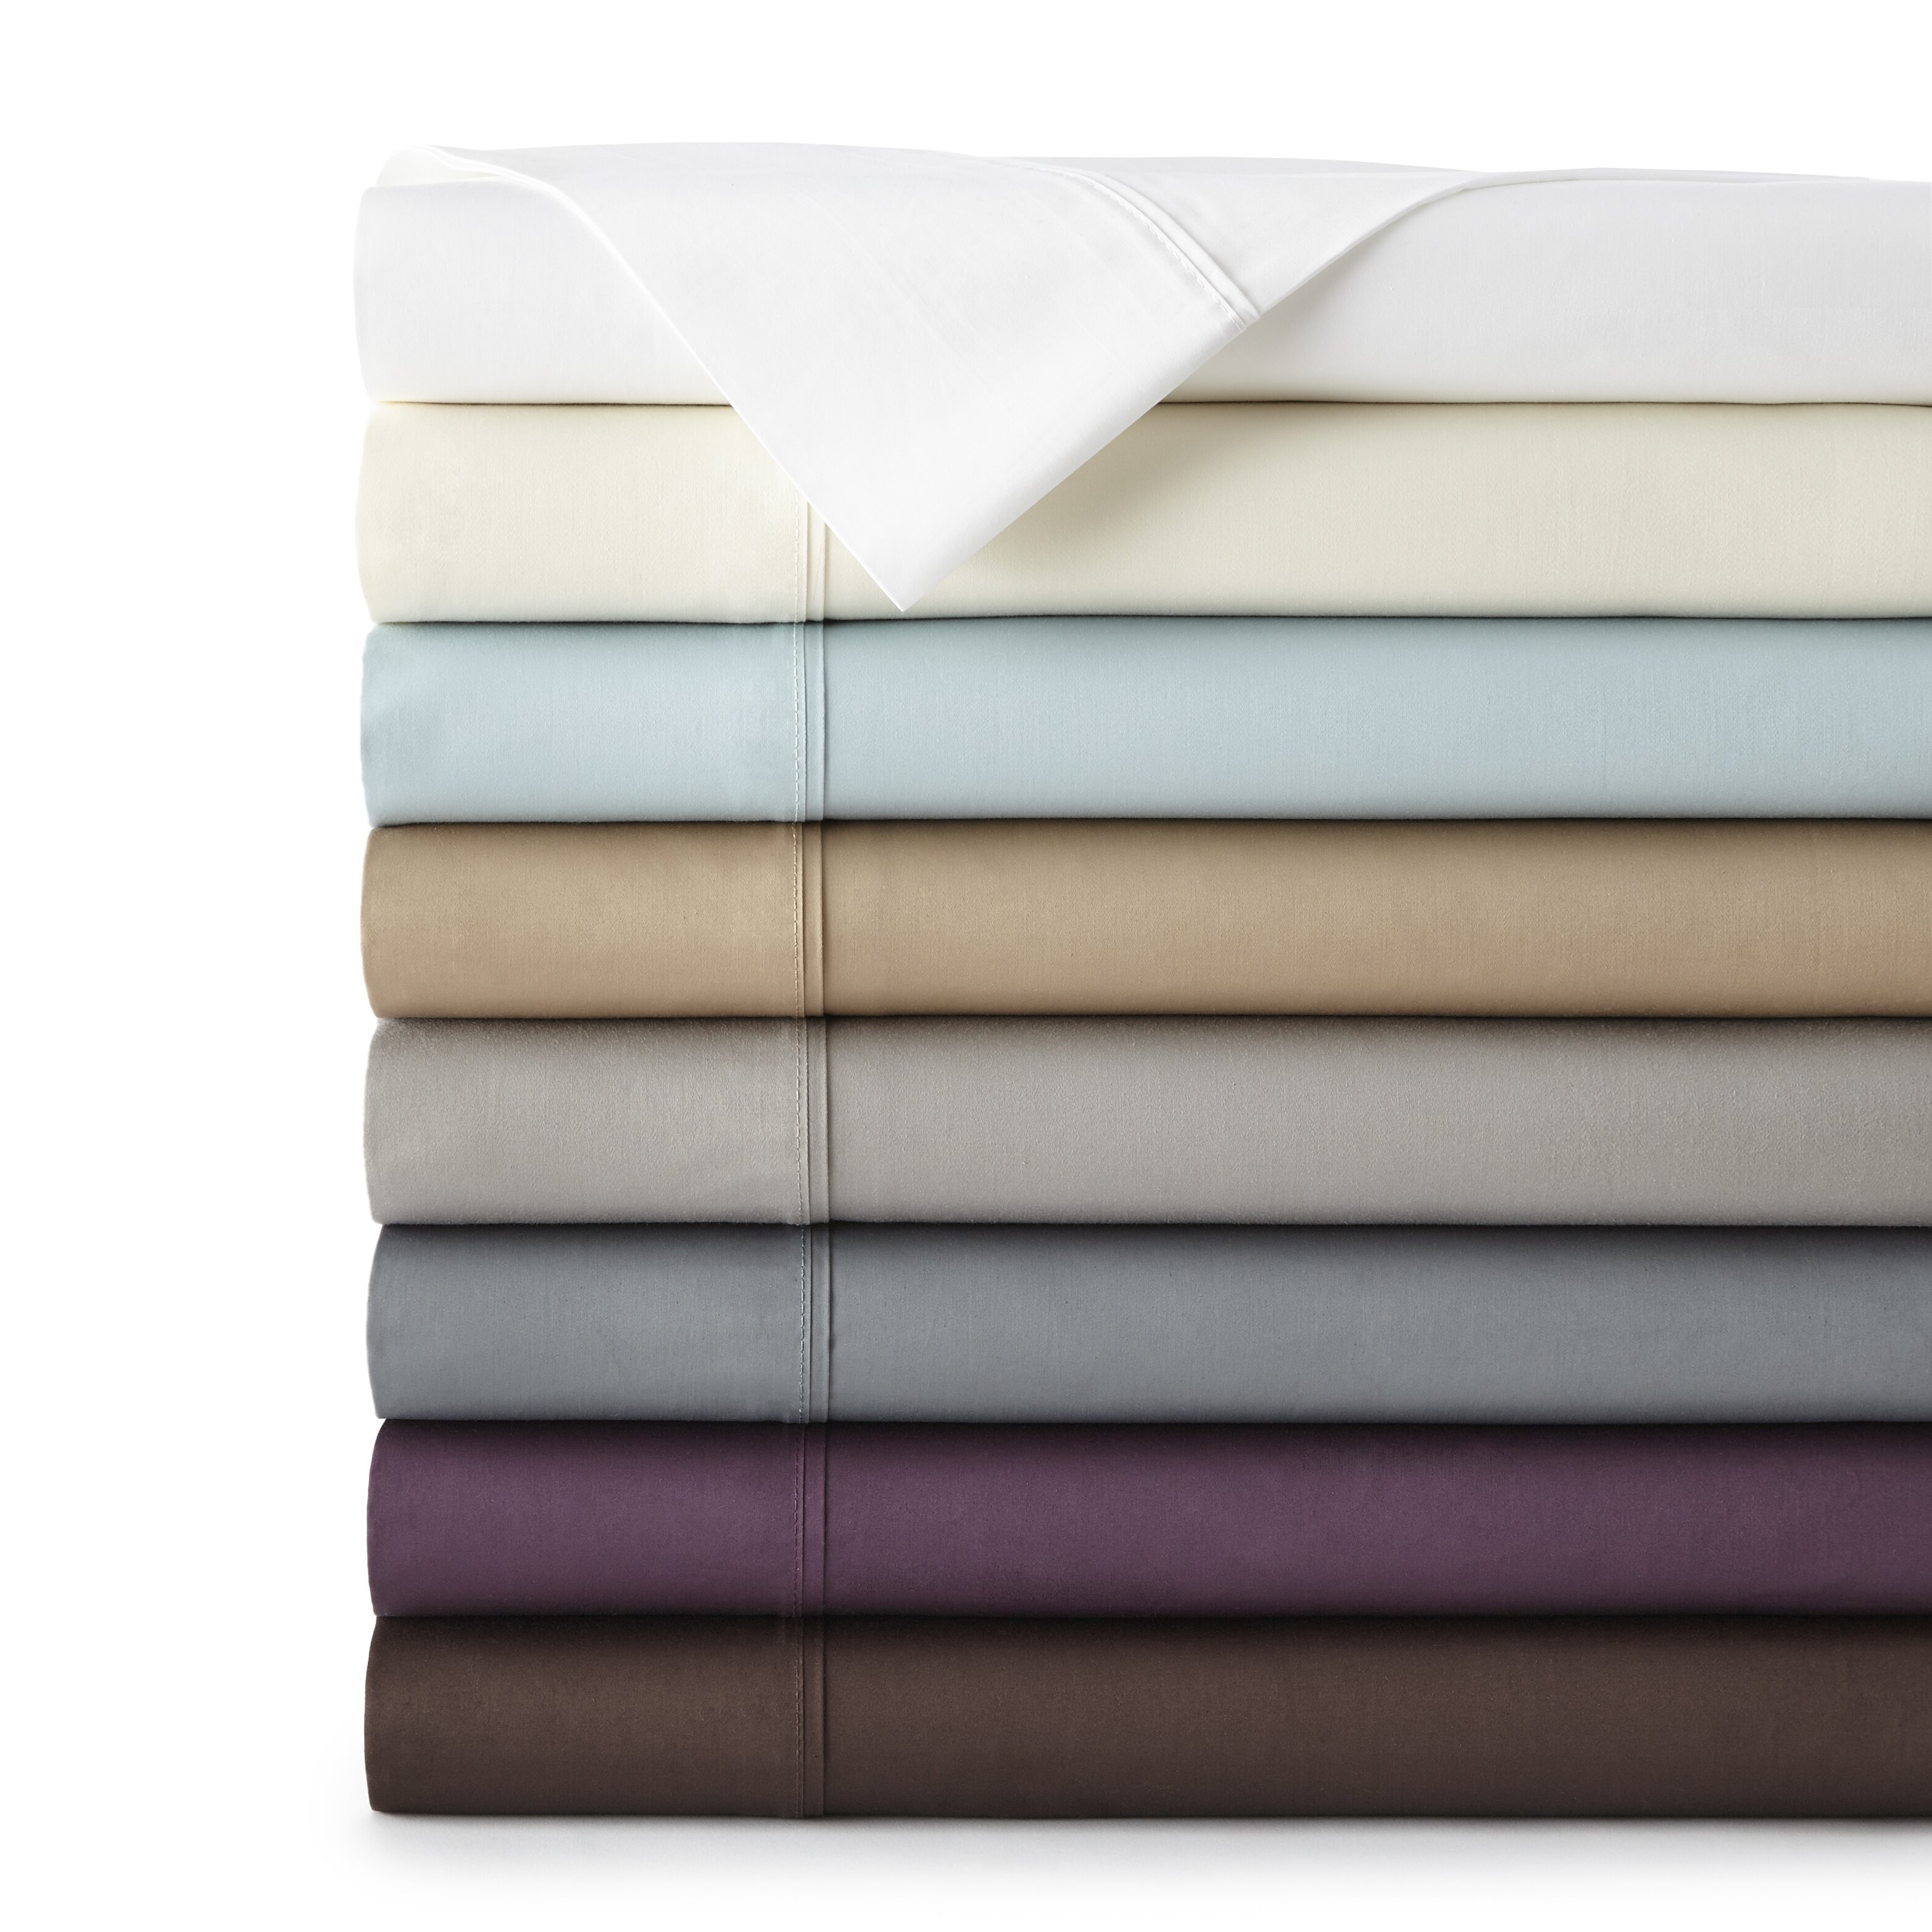 Extra deep pocket queen fitted sheets - Southshore Fine Linens 300 Thread Count 100 Cotton Extra Deep Pocket Sheet Set